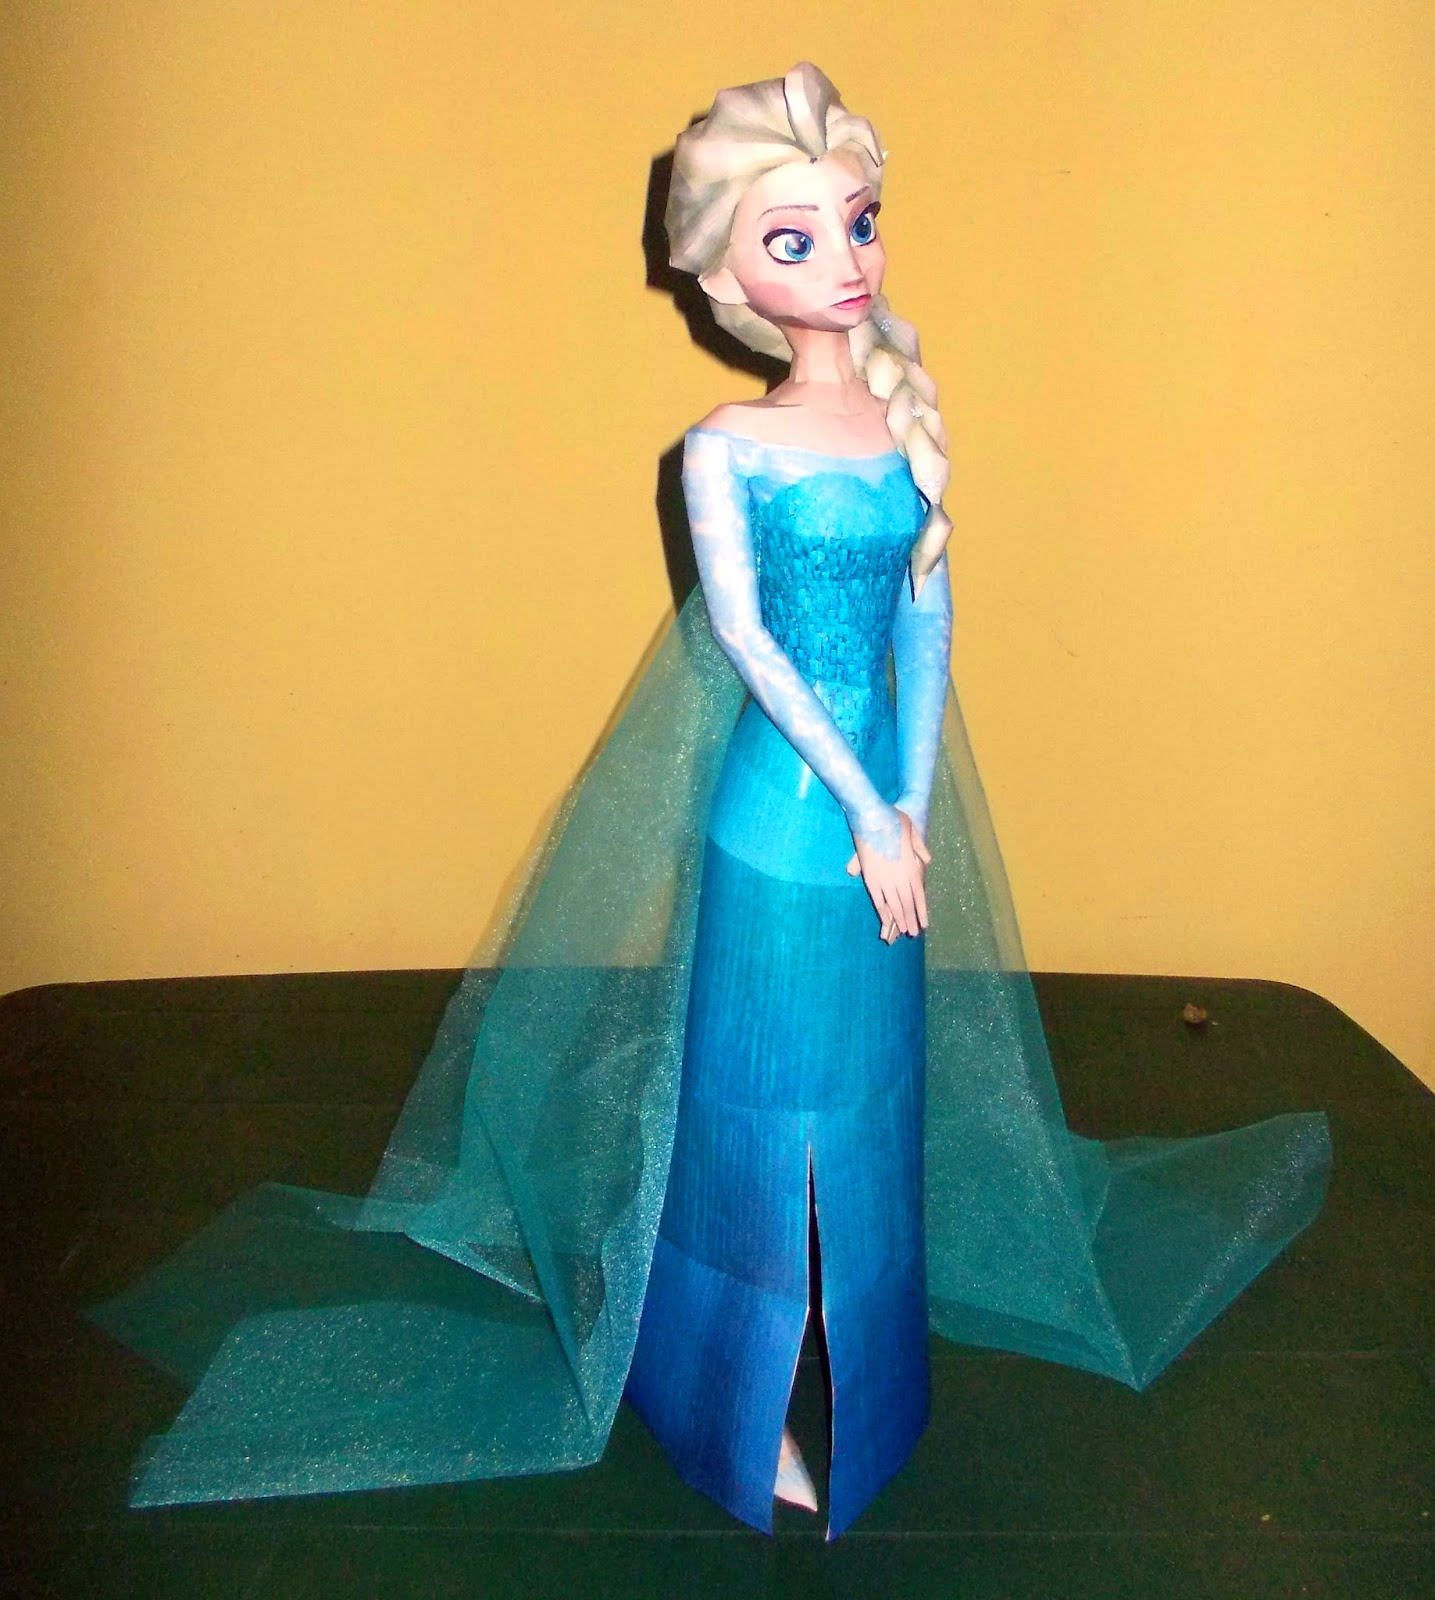 Elsa the Snow Queen [Frozen]